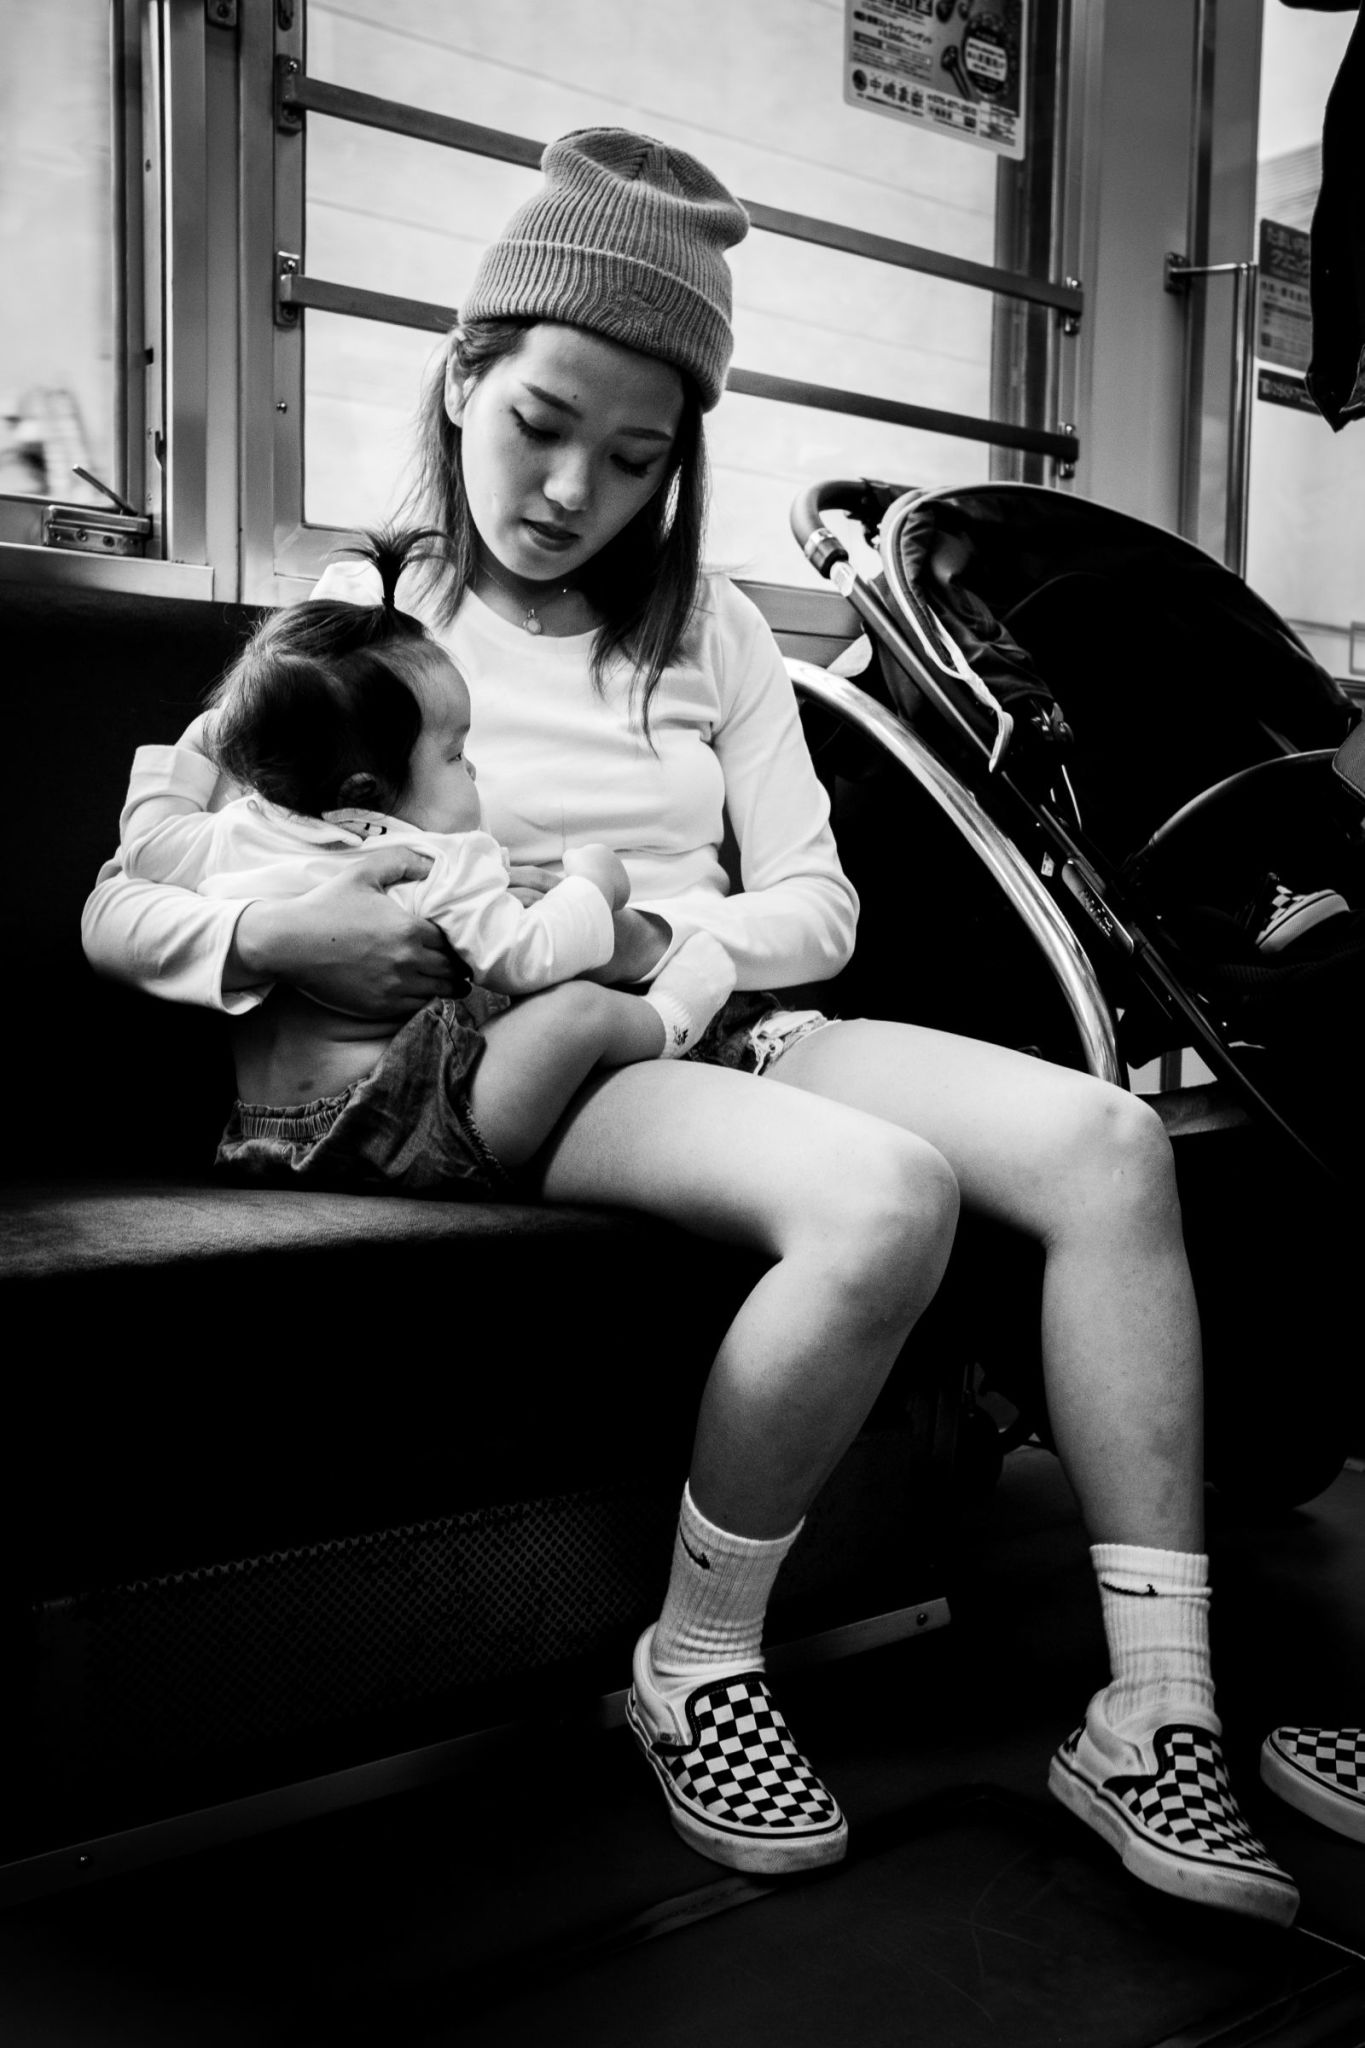 Taking care of baby.